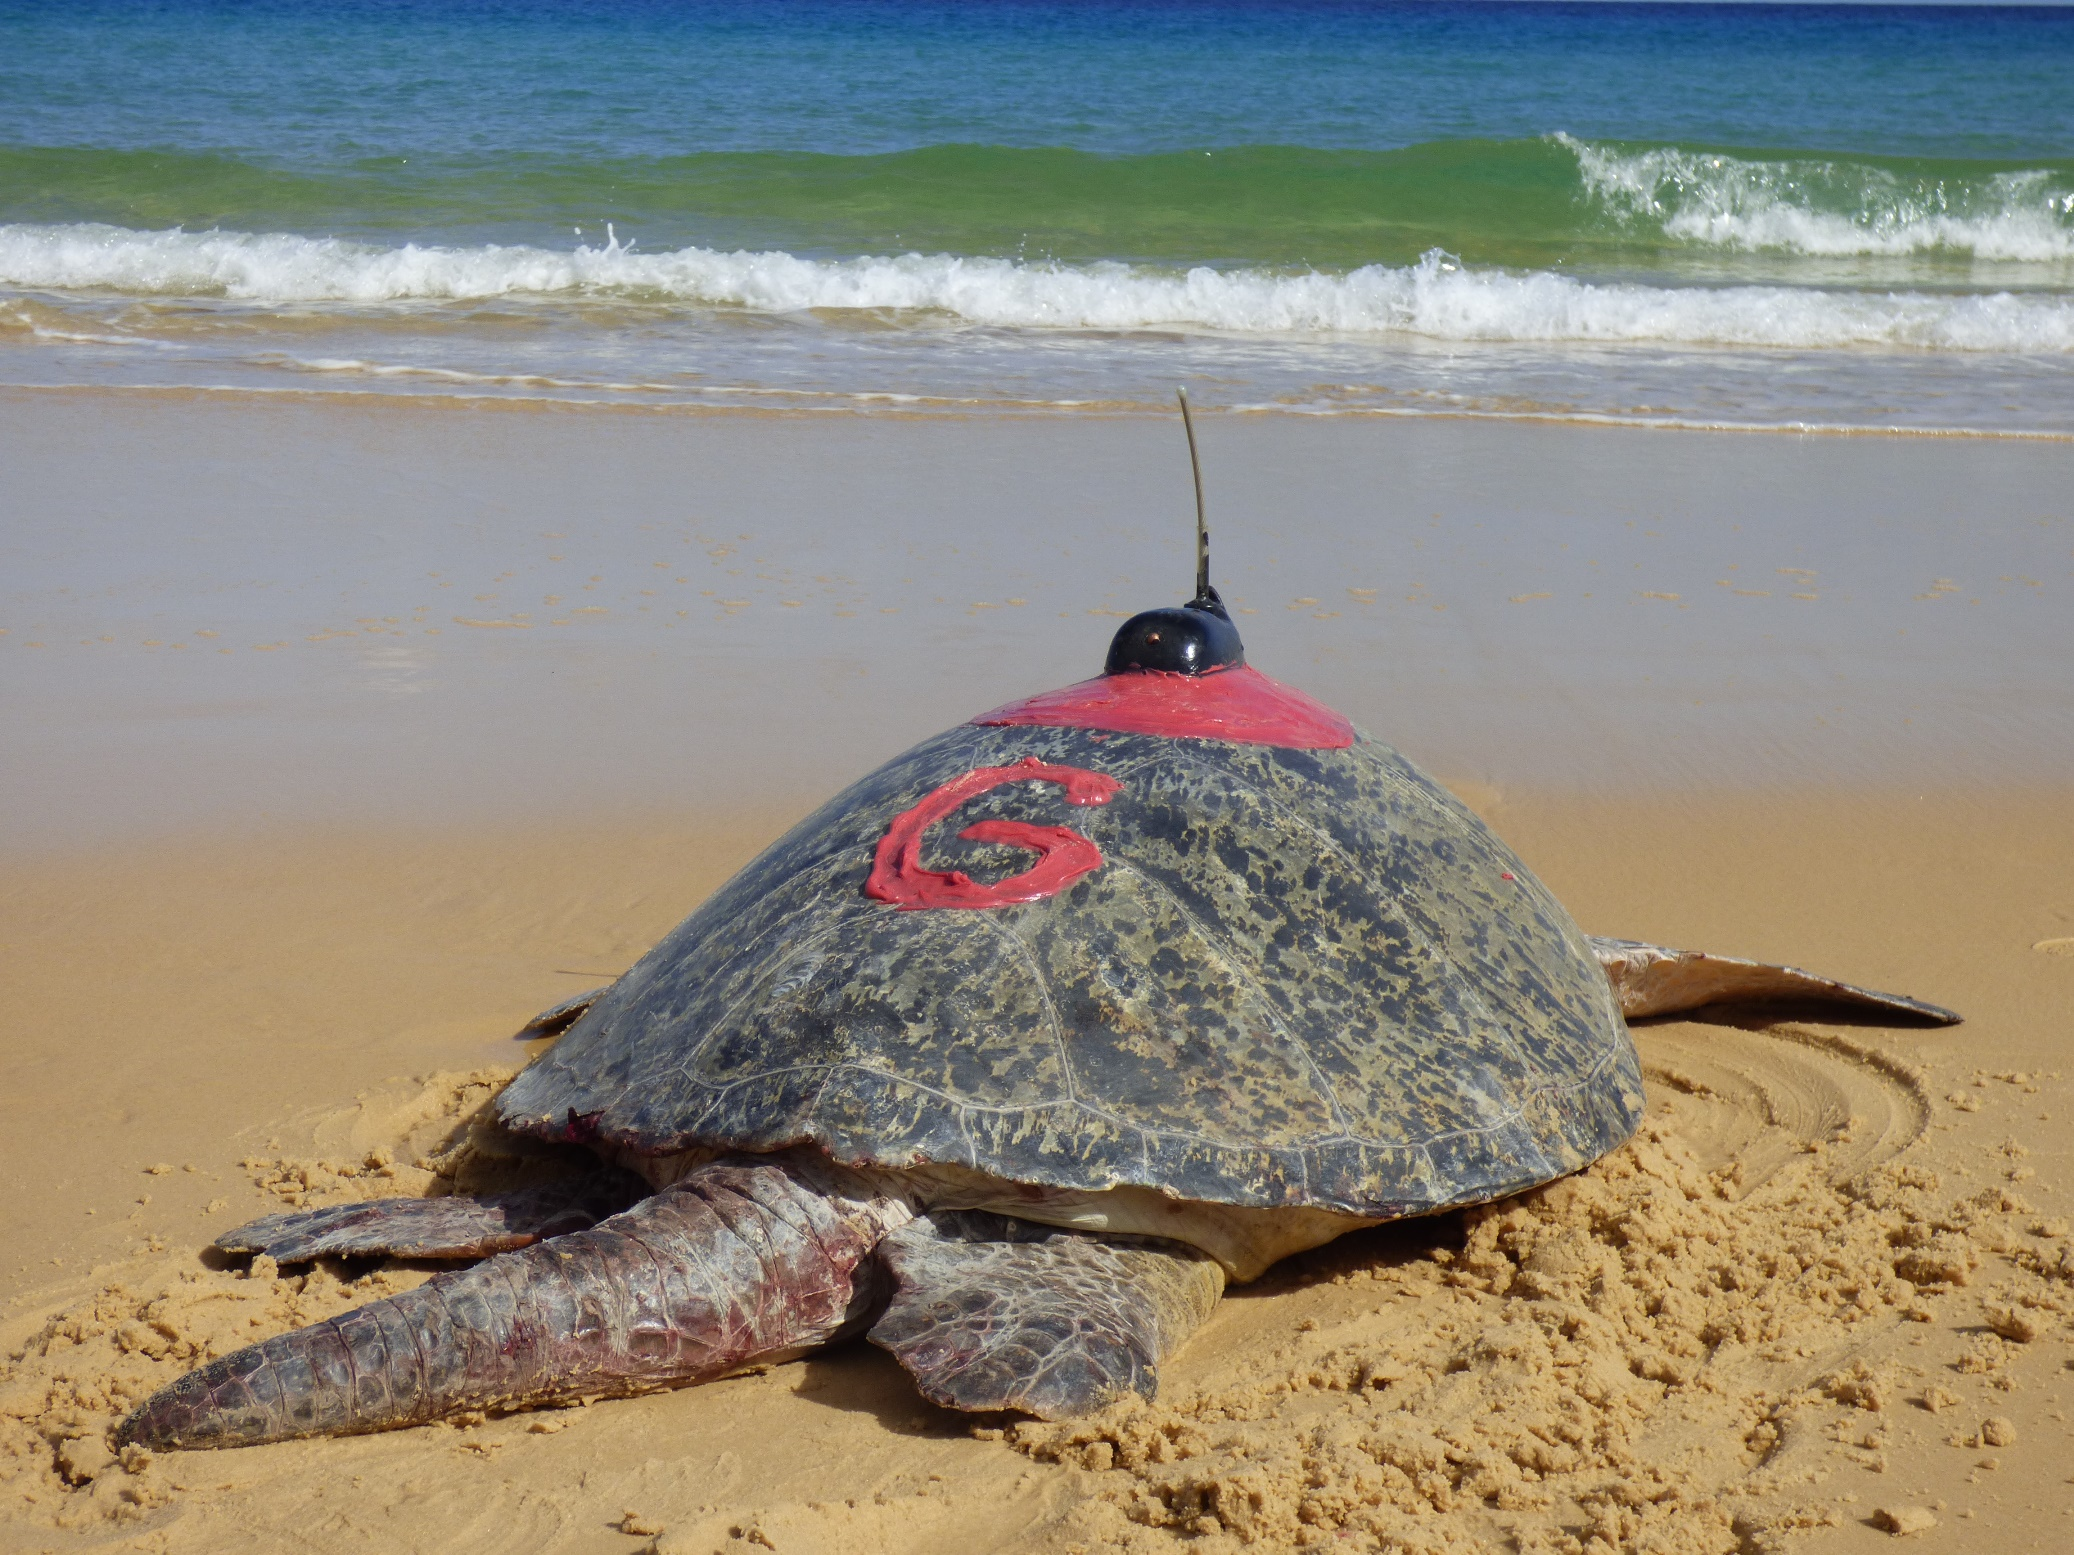 POTD: Male green turtle with satellite tag, Sandy Cape, Queensland, Australia myd.as/p8027